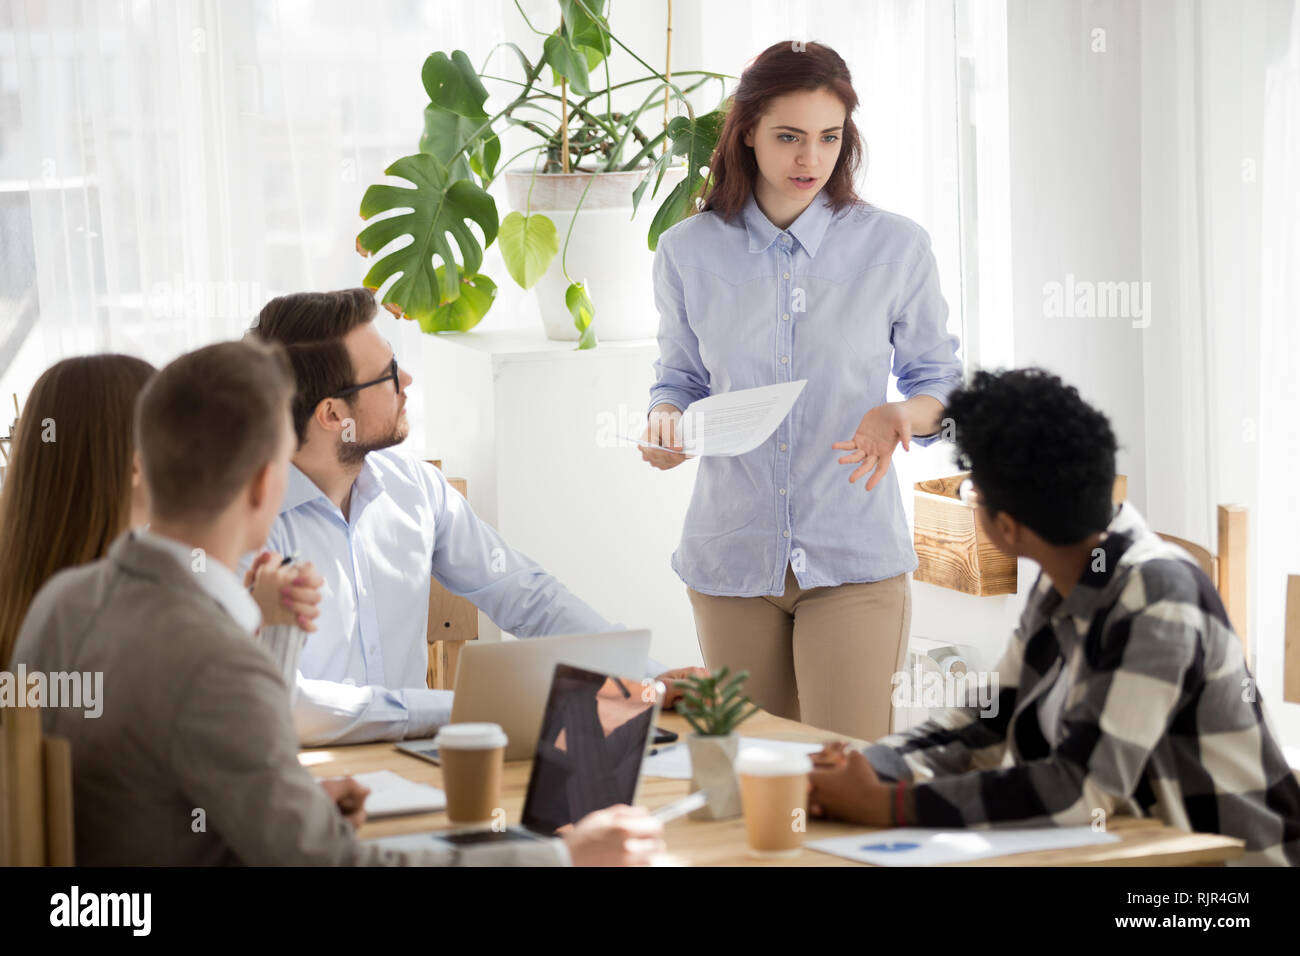 Caucasian employee having disagreement disputing with african coworker at meeting - Stock Image